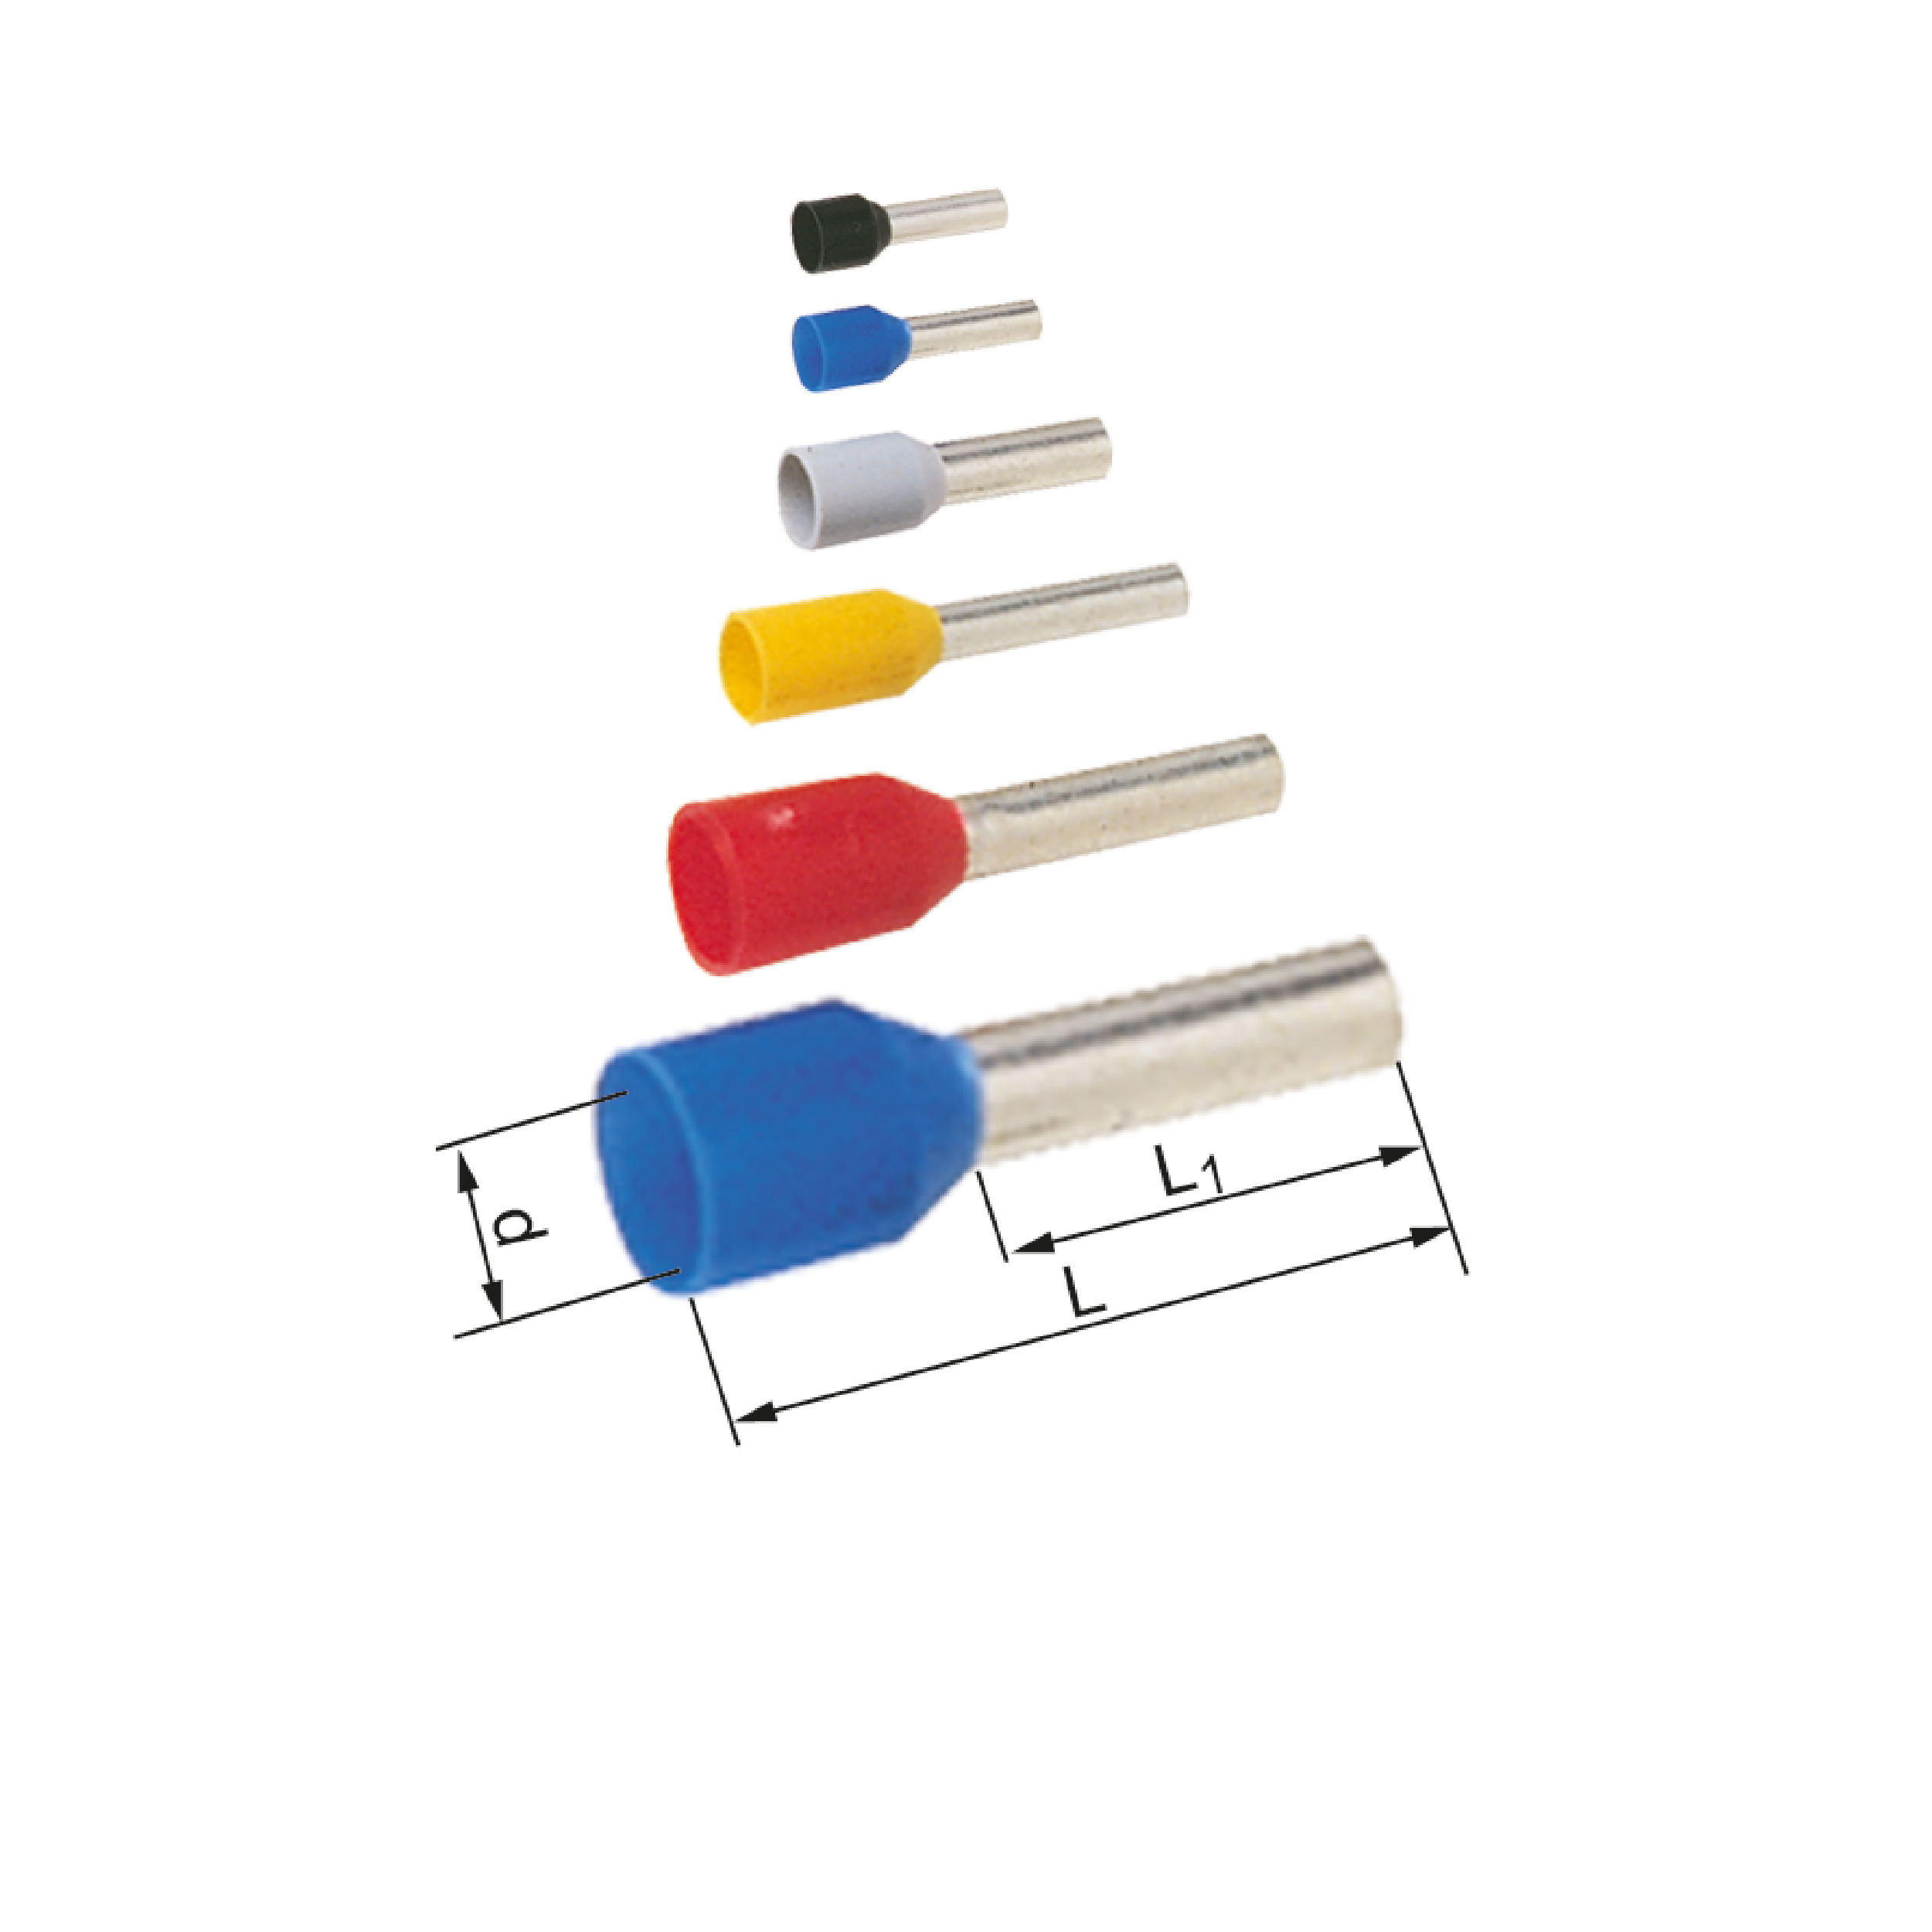 Elpress Pre Insulated End Terminals for short-circuit proof cable-insulations 1.5-16mm²